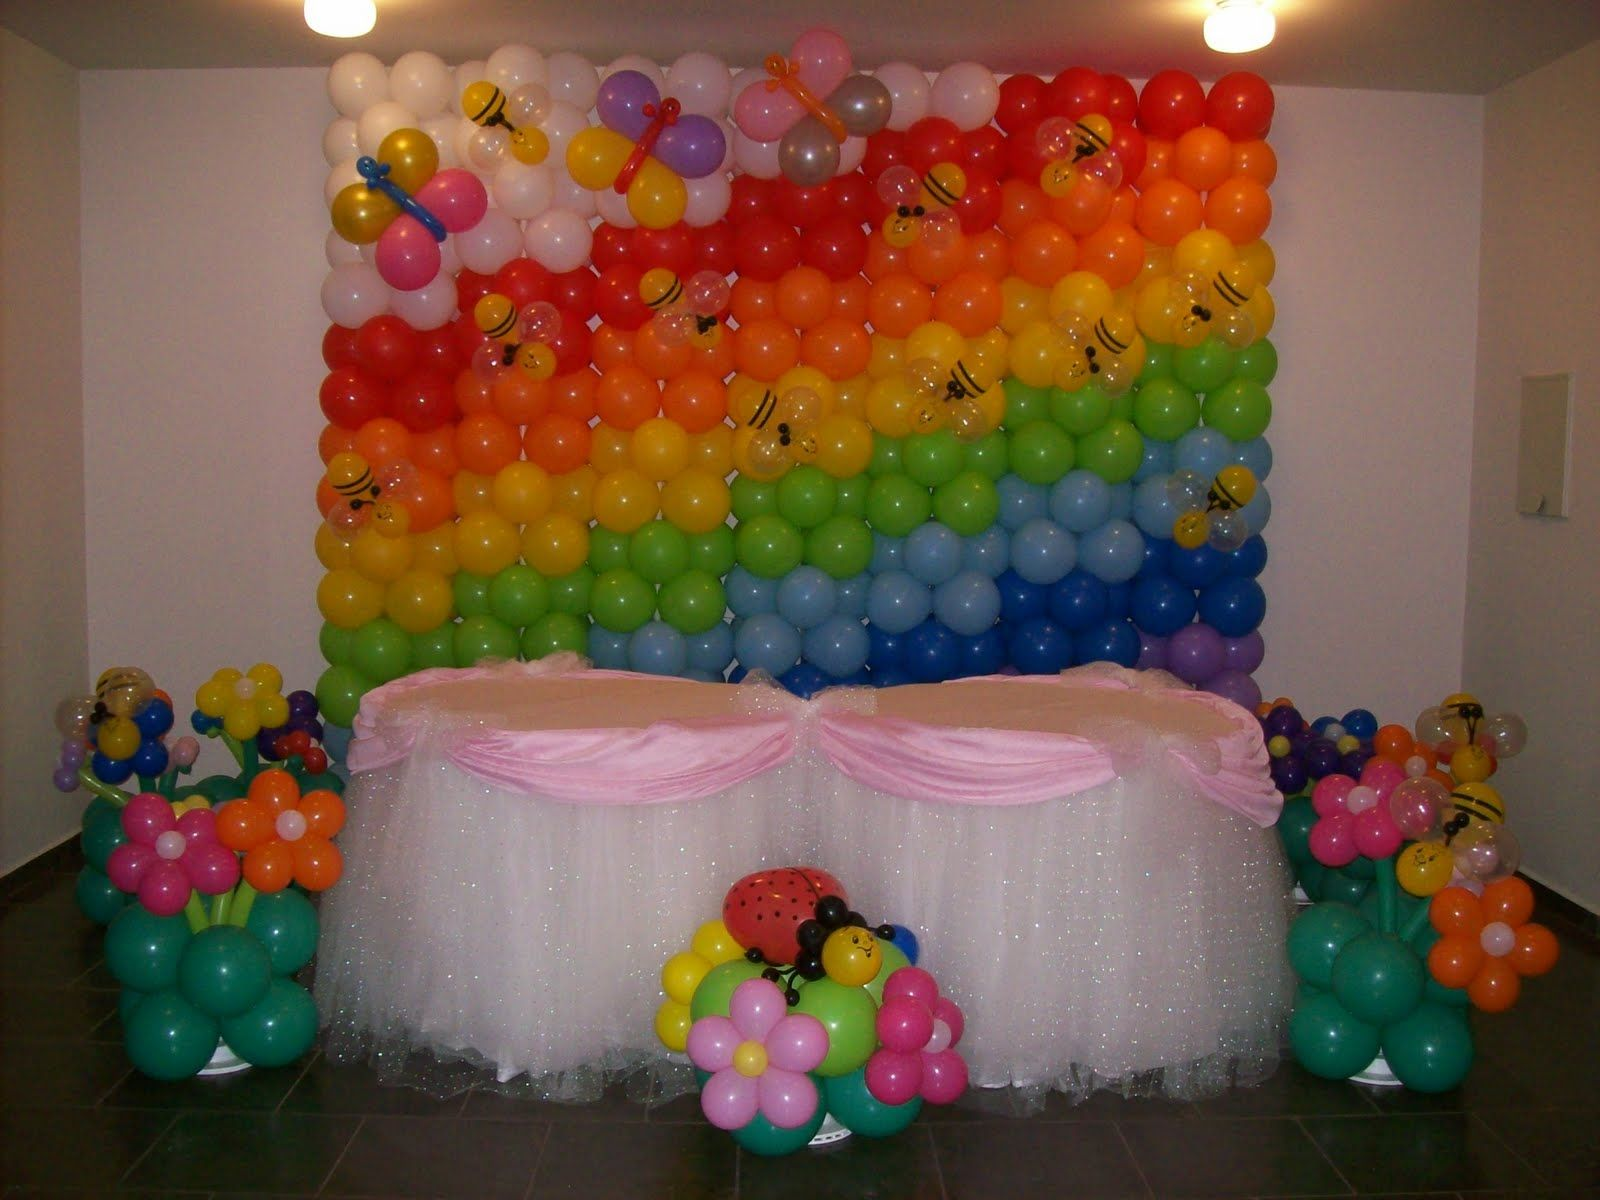 Pared de globos de fiesta tem tica de arco iris para for Decoracion para pared para cumpleanos